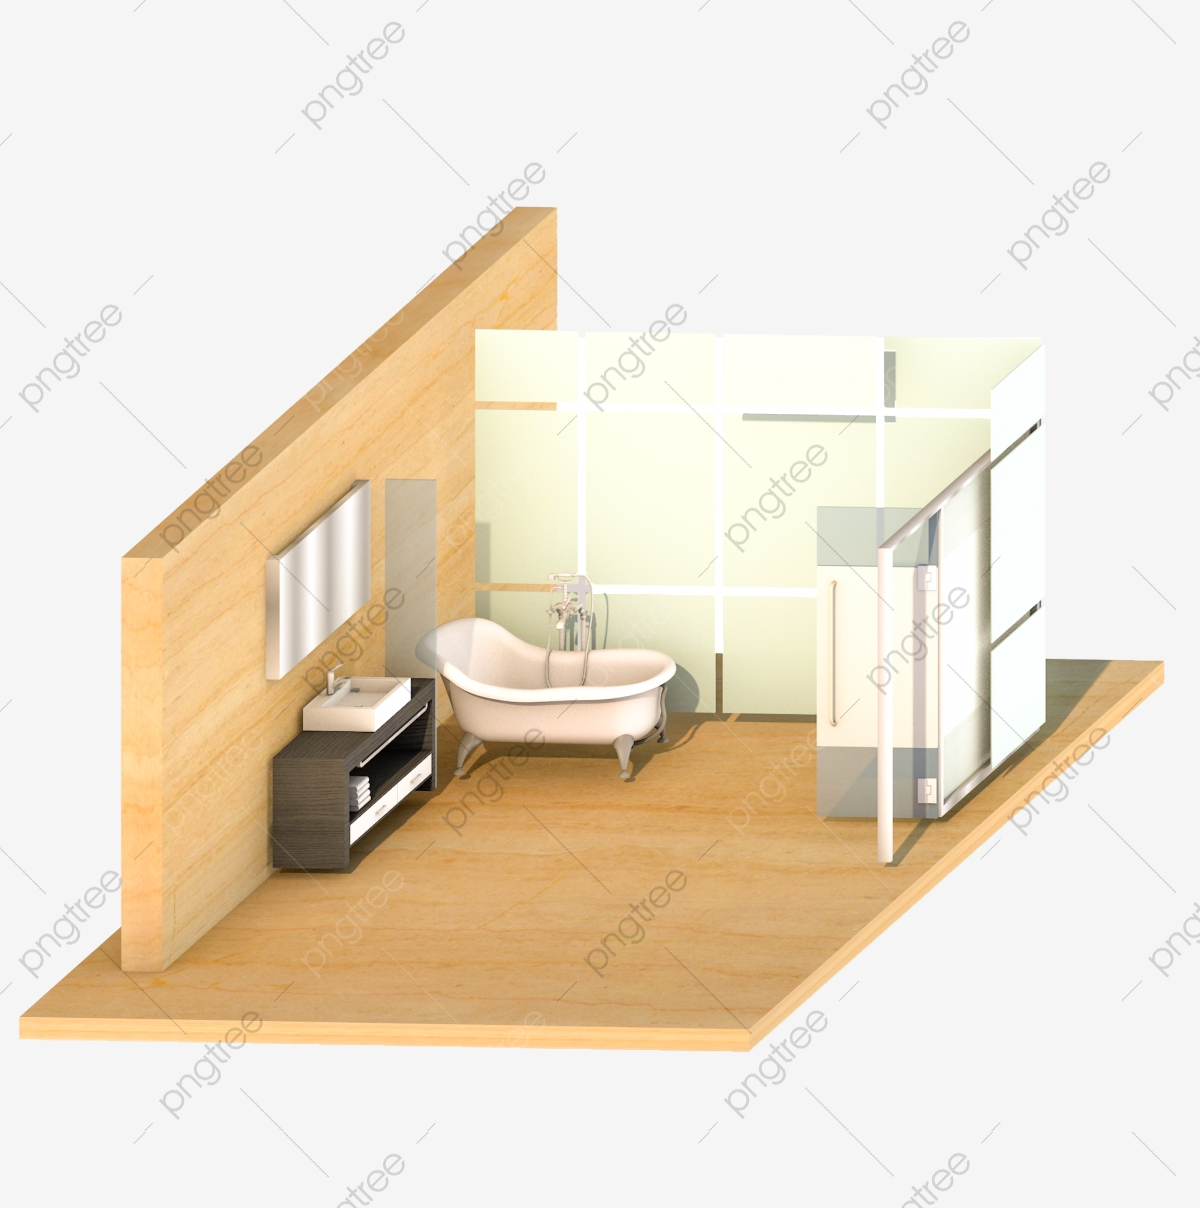 3d Bathroom Toilet Setting Scene 3d Bathroom Toilet 3d Toilet Three Dimensional Bathroom Furnishings Png Transparent Clipart Image And Psd File For Free Download